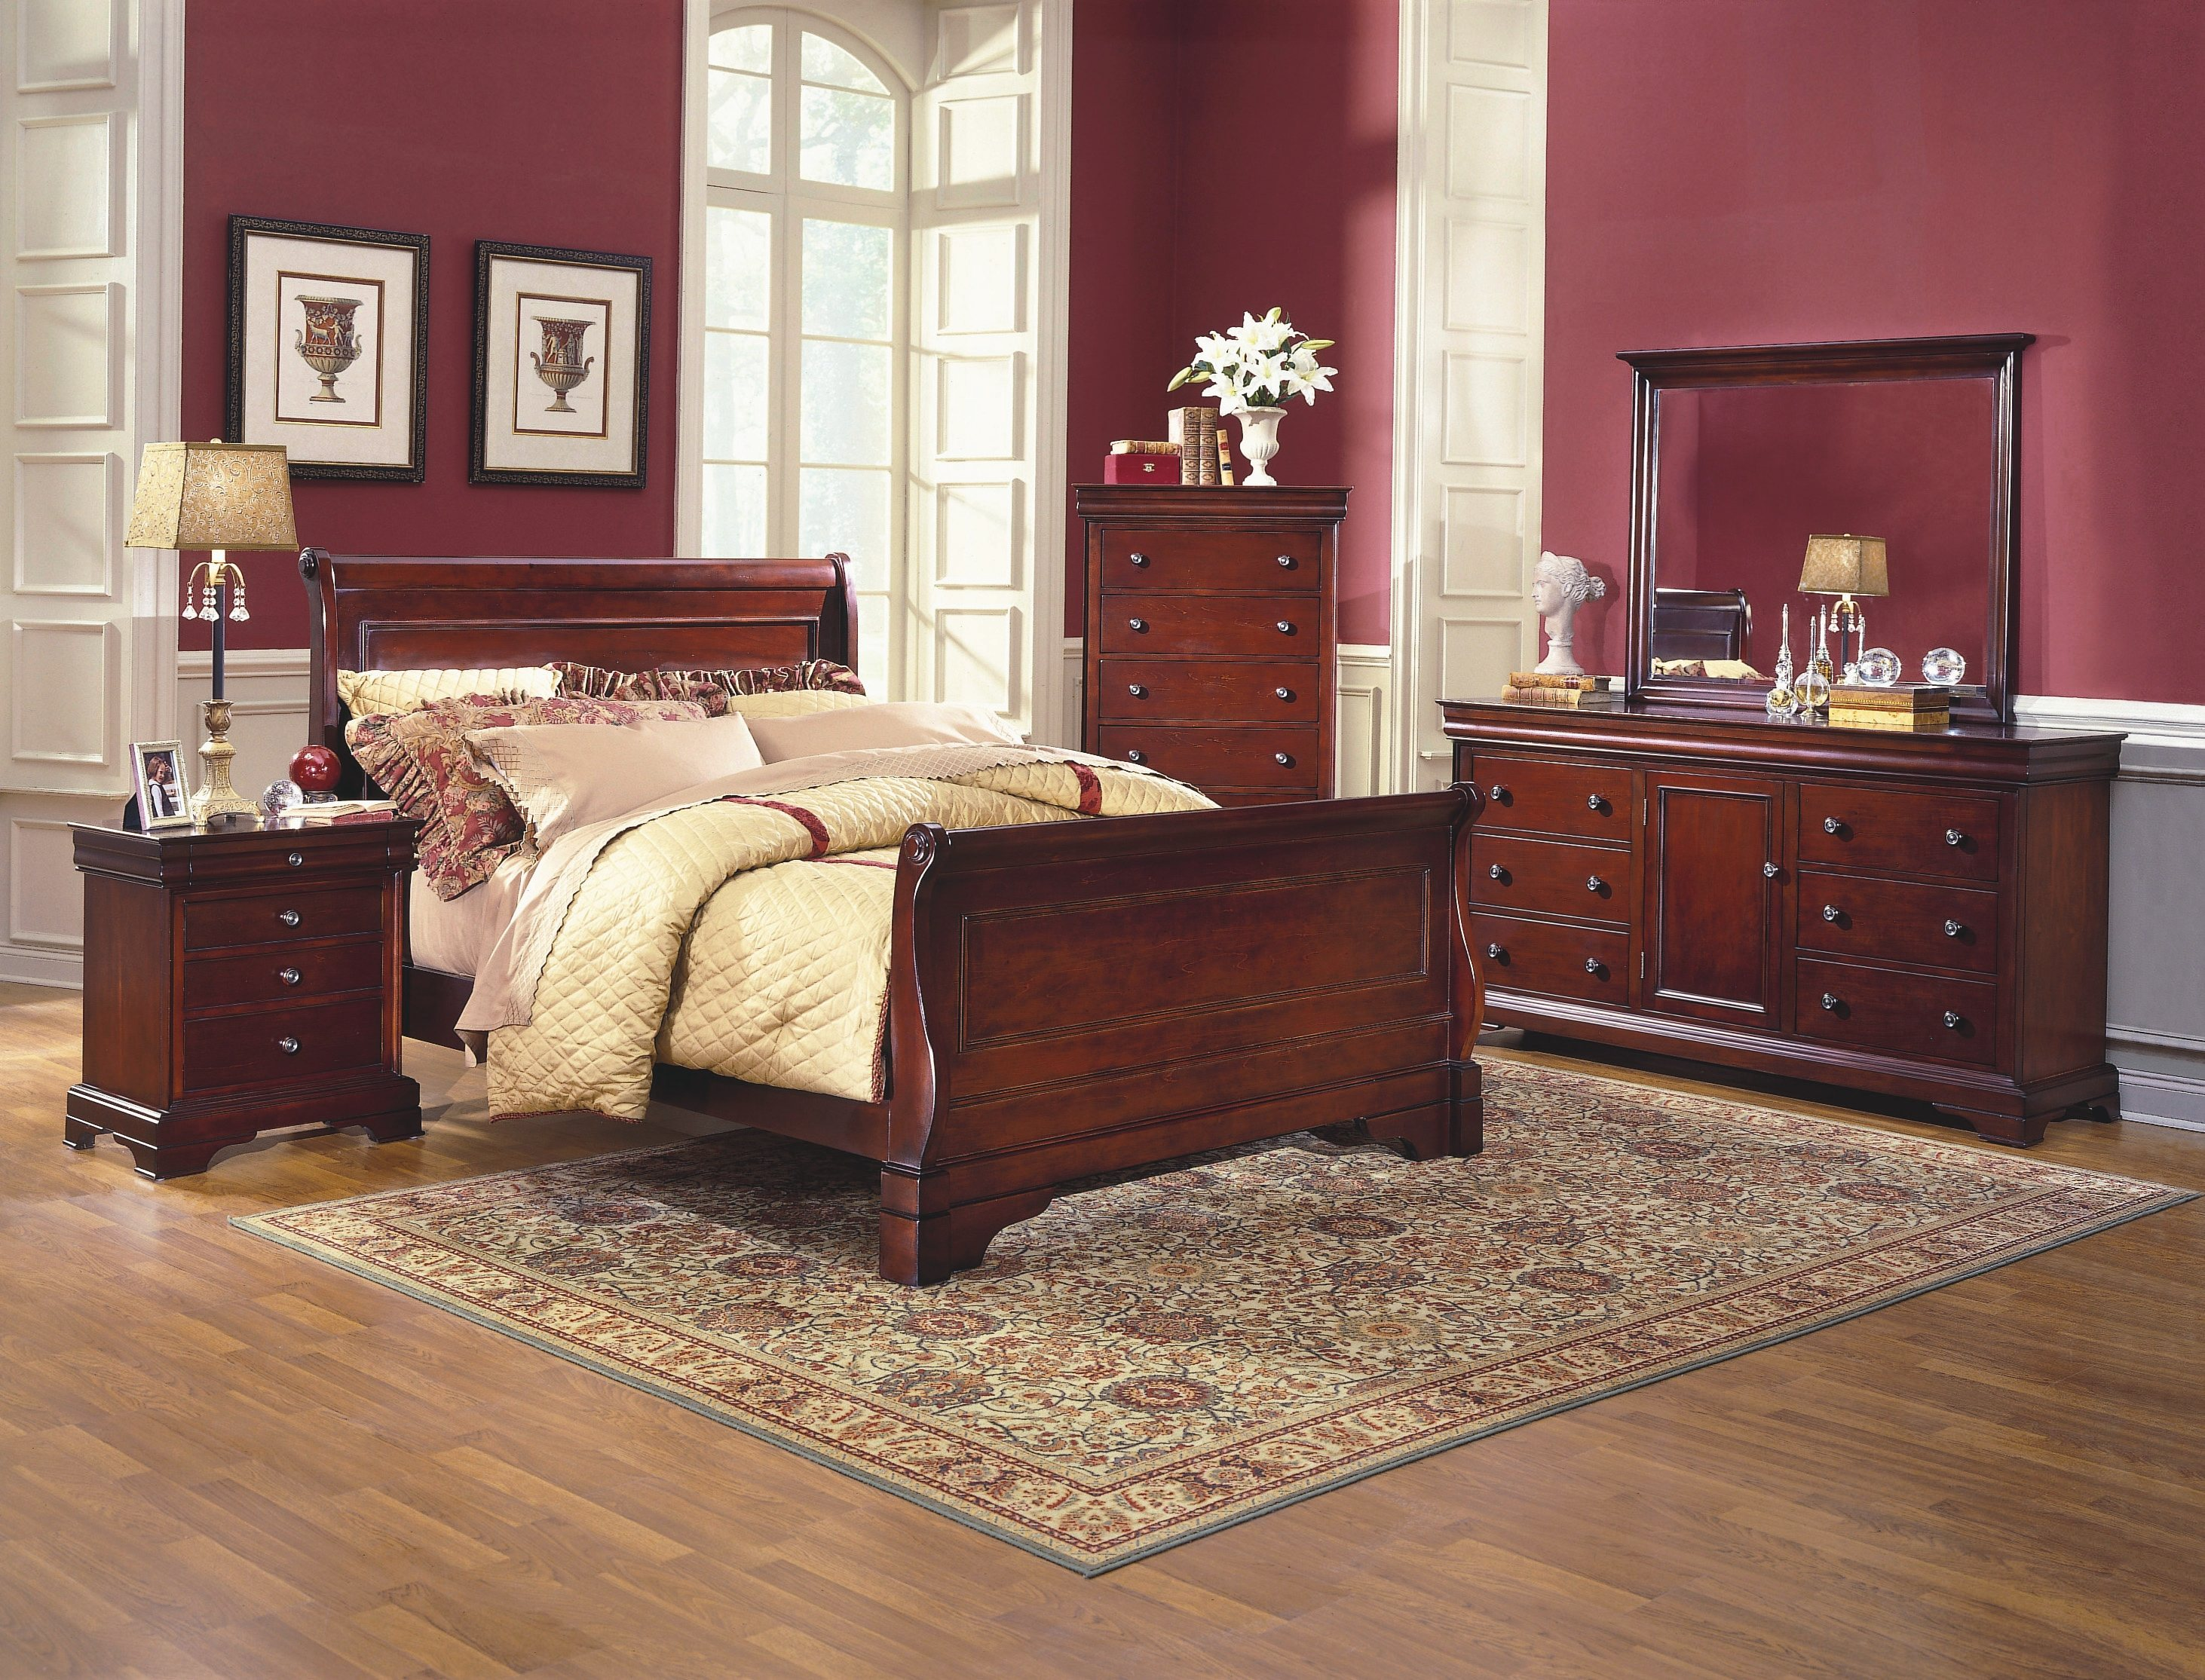 darvin furniture orland park chicago il bedroom furniture chicago contemporary bedroom furniture bedroom contemporary furniture - Bedroom Furniture Stores Chicago